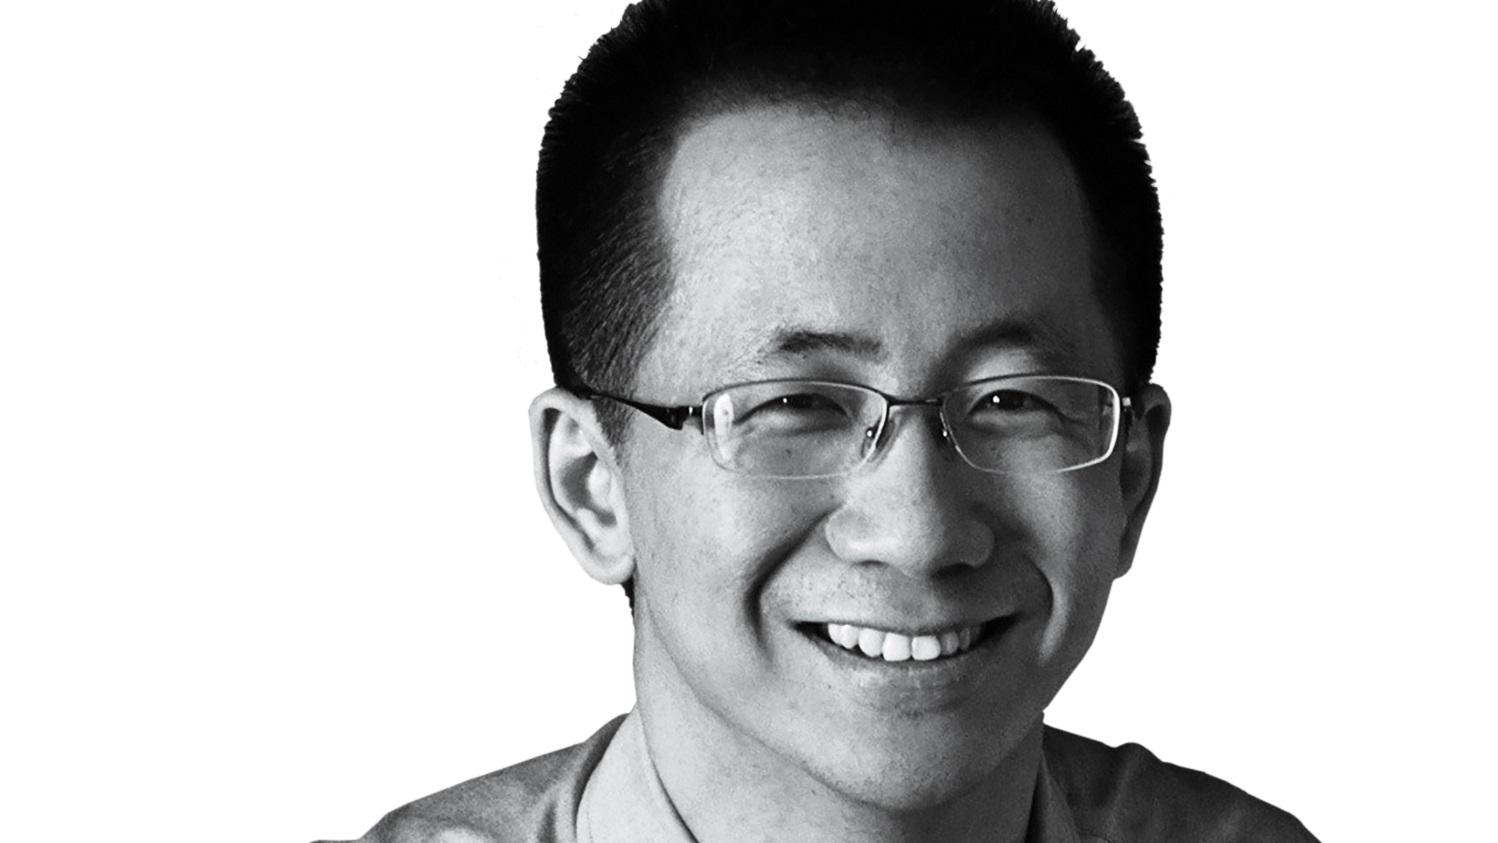 ByteDance Co-Founder Zhang Yiming to Step Down as CEO